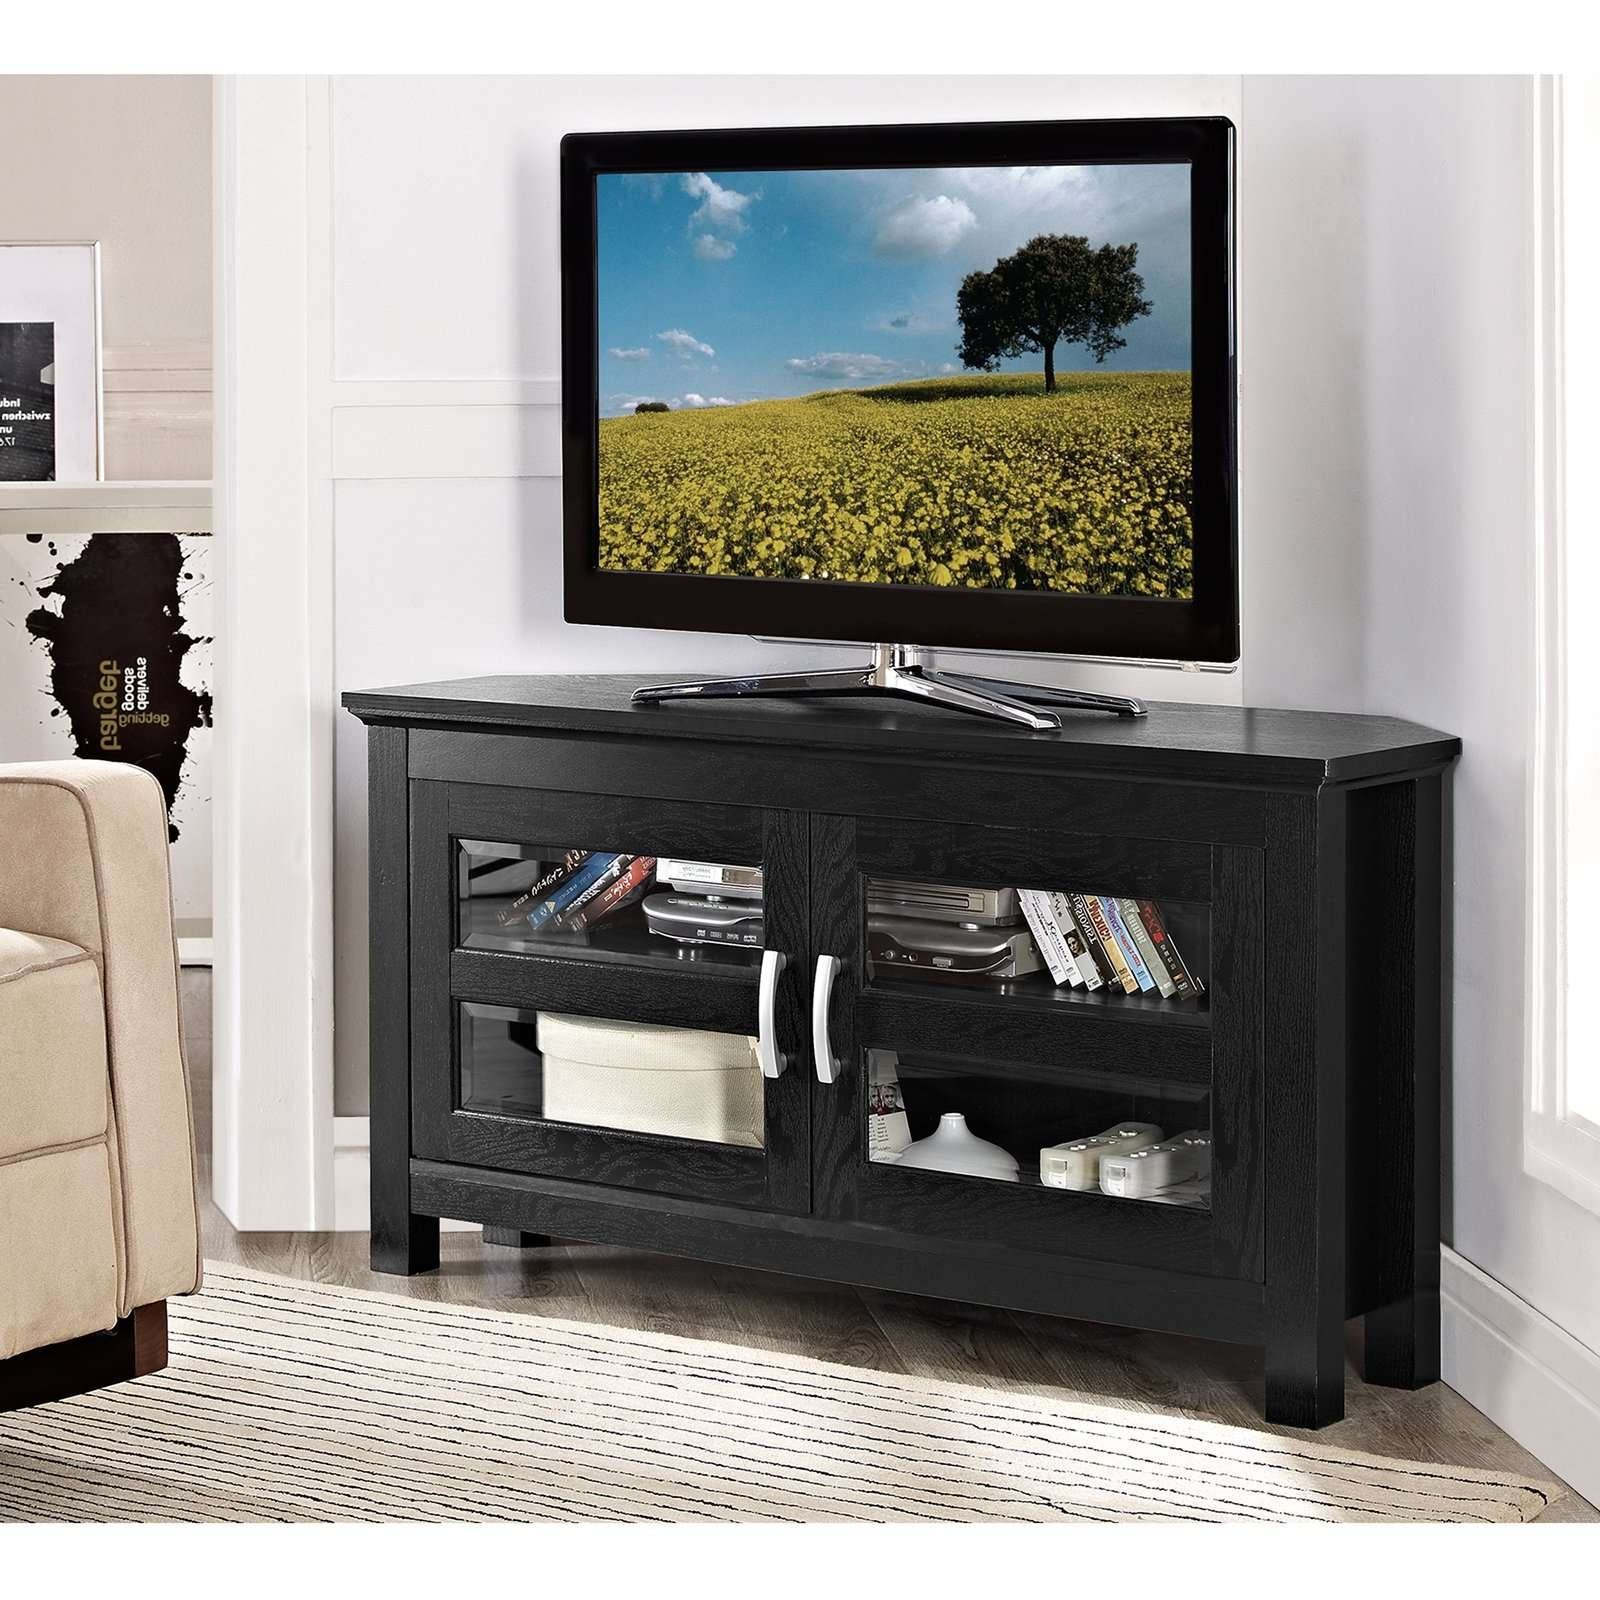 Compton Black Corner Tv Stand | Hayneedle Throughout Black Corner Tv Stands For Tvs Up To (View 10 of 20)